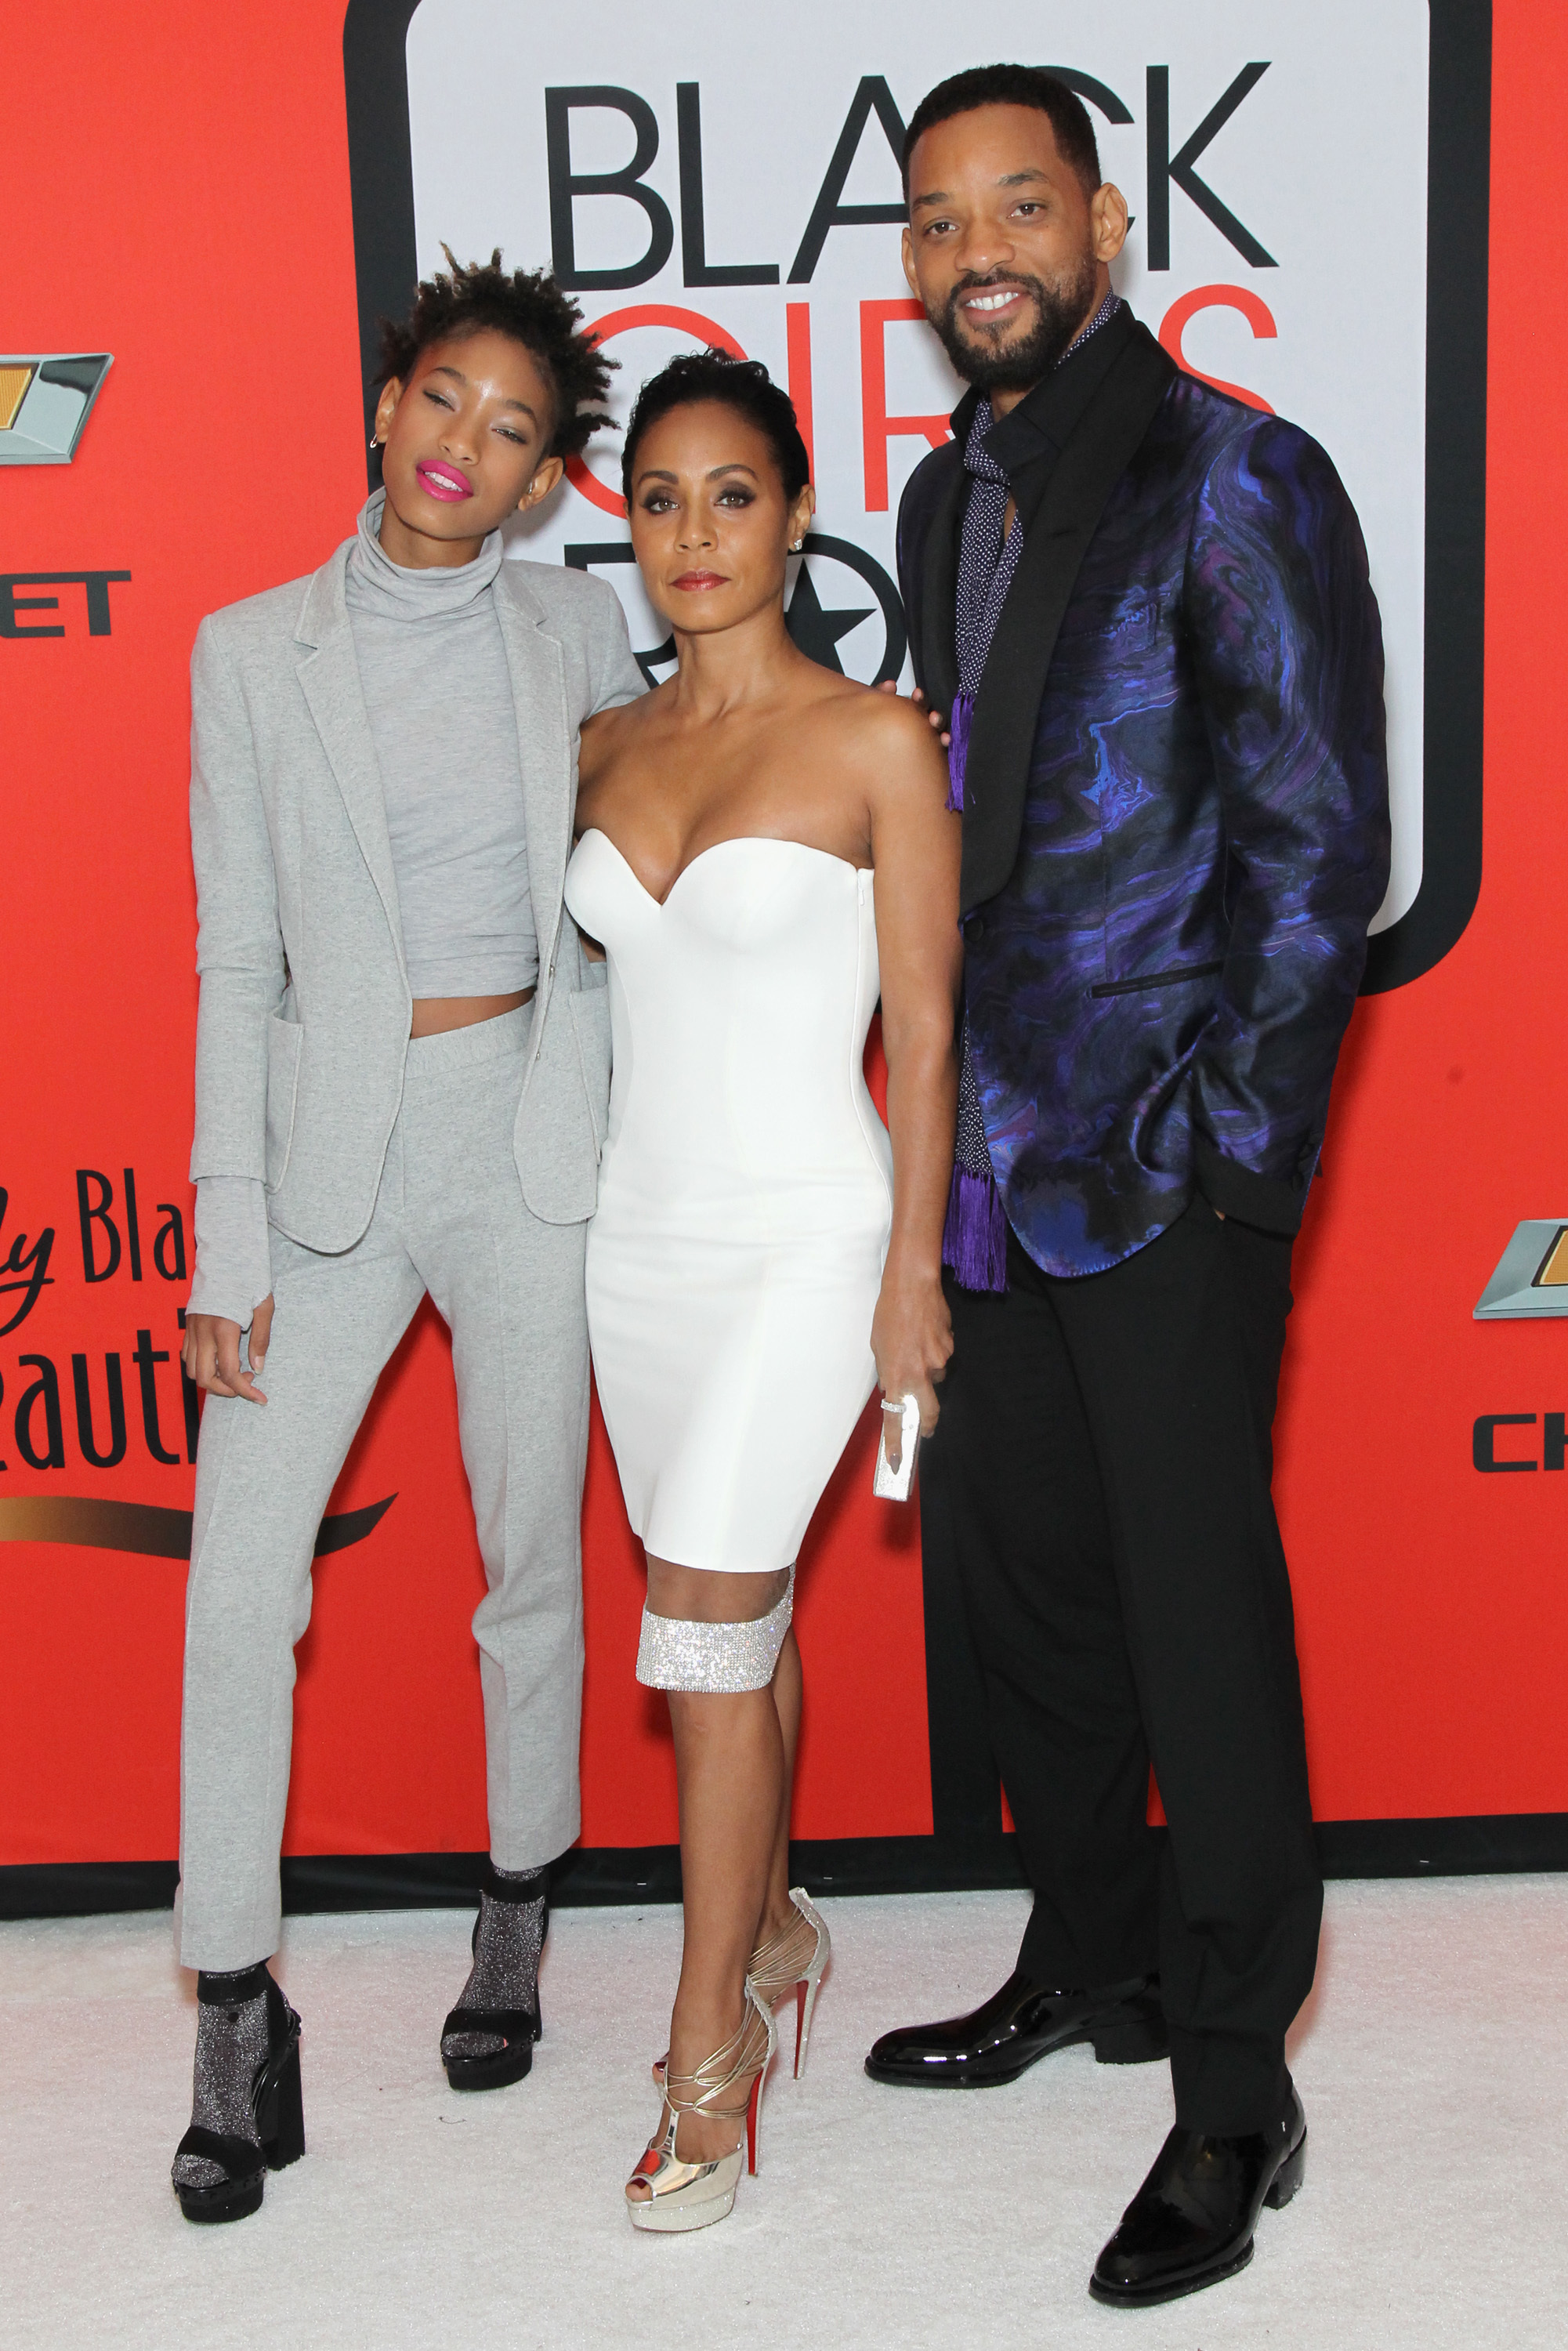 """Willow Smith, Jada Pinkett Smith, and Will Smith attend the BET's """"Black Girls Rock!"""" Red Carpet sponsored by Chevrolet at NJPAC ? Prudential Hall in Newark, New Jersey on March 28, 2015."""